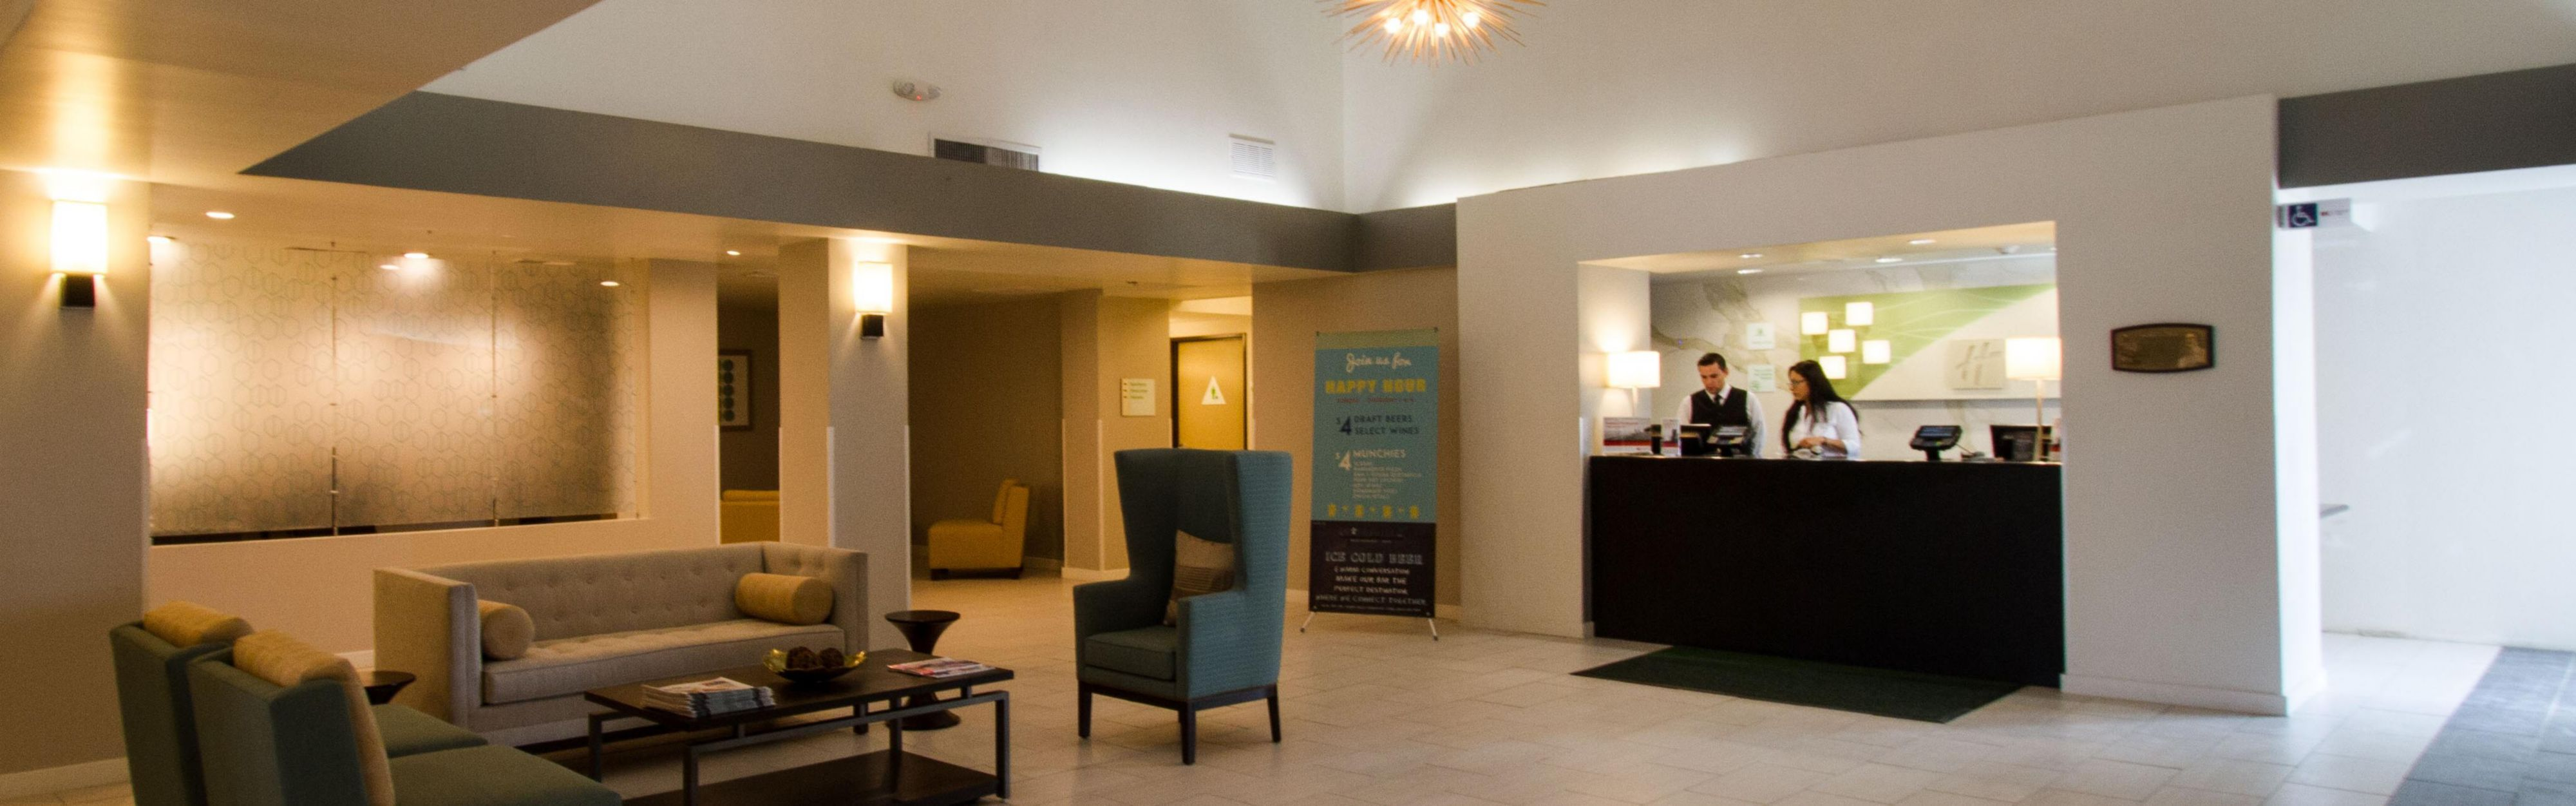 Holiday Inn Victorville image 0